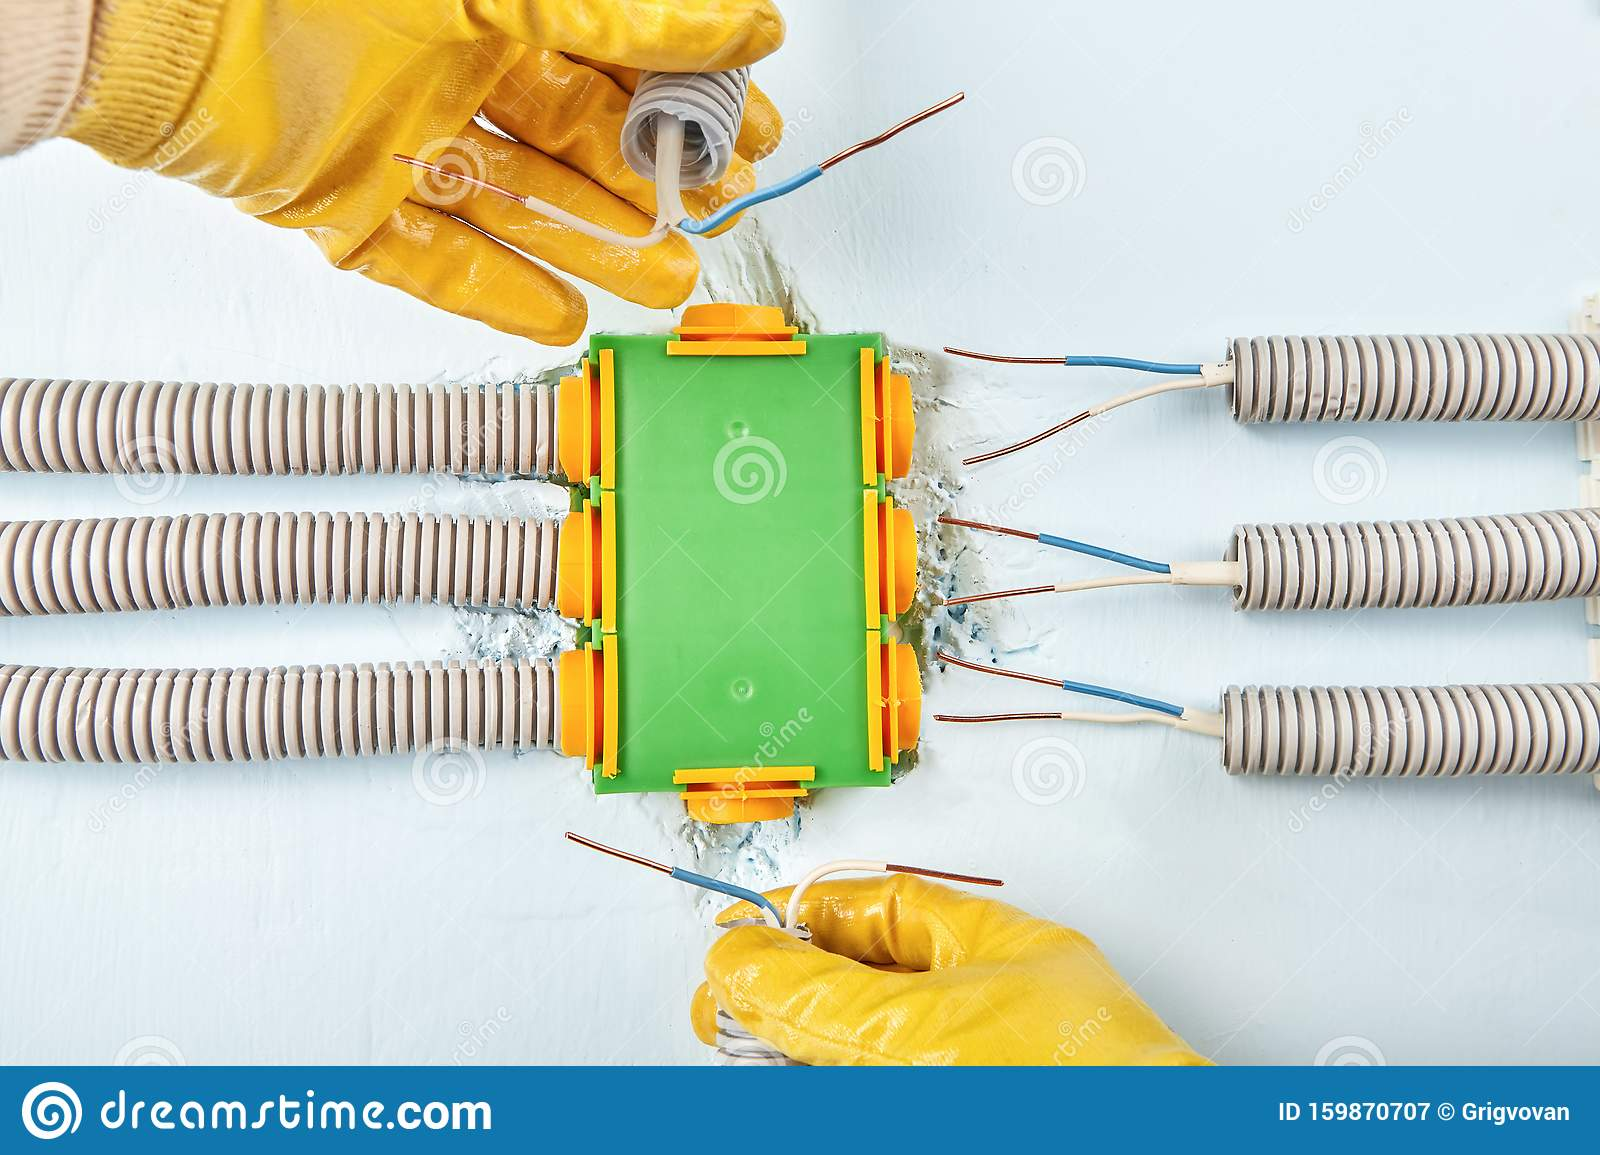 156 Residential Electrical Services Photos - Free & Royalty-Free Stock  Photos from Dreamstime